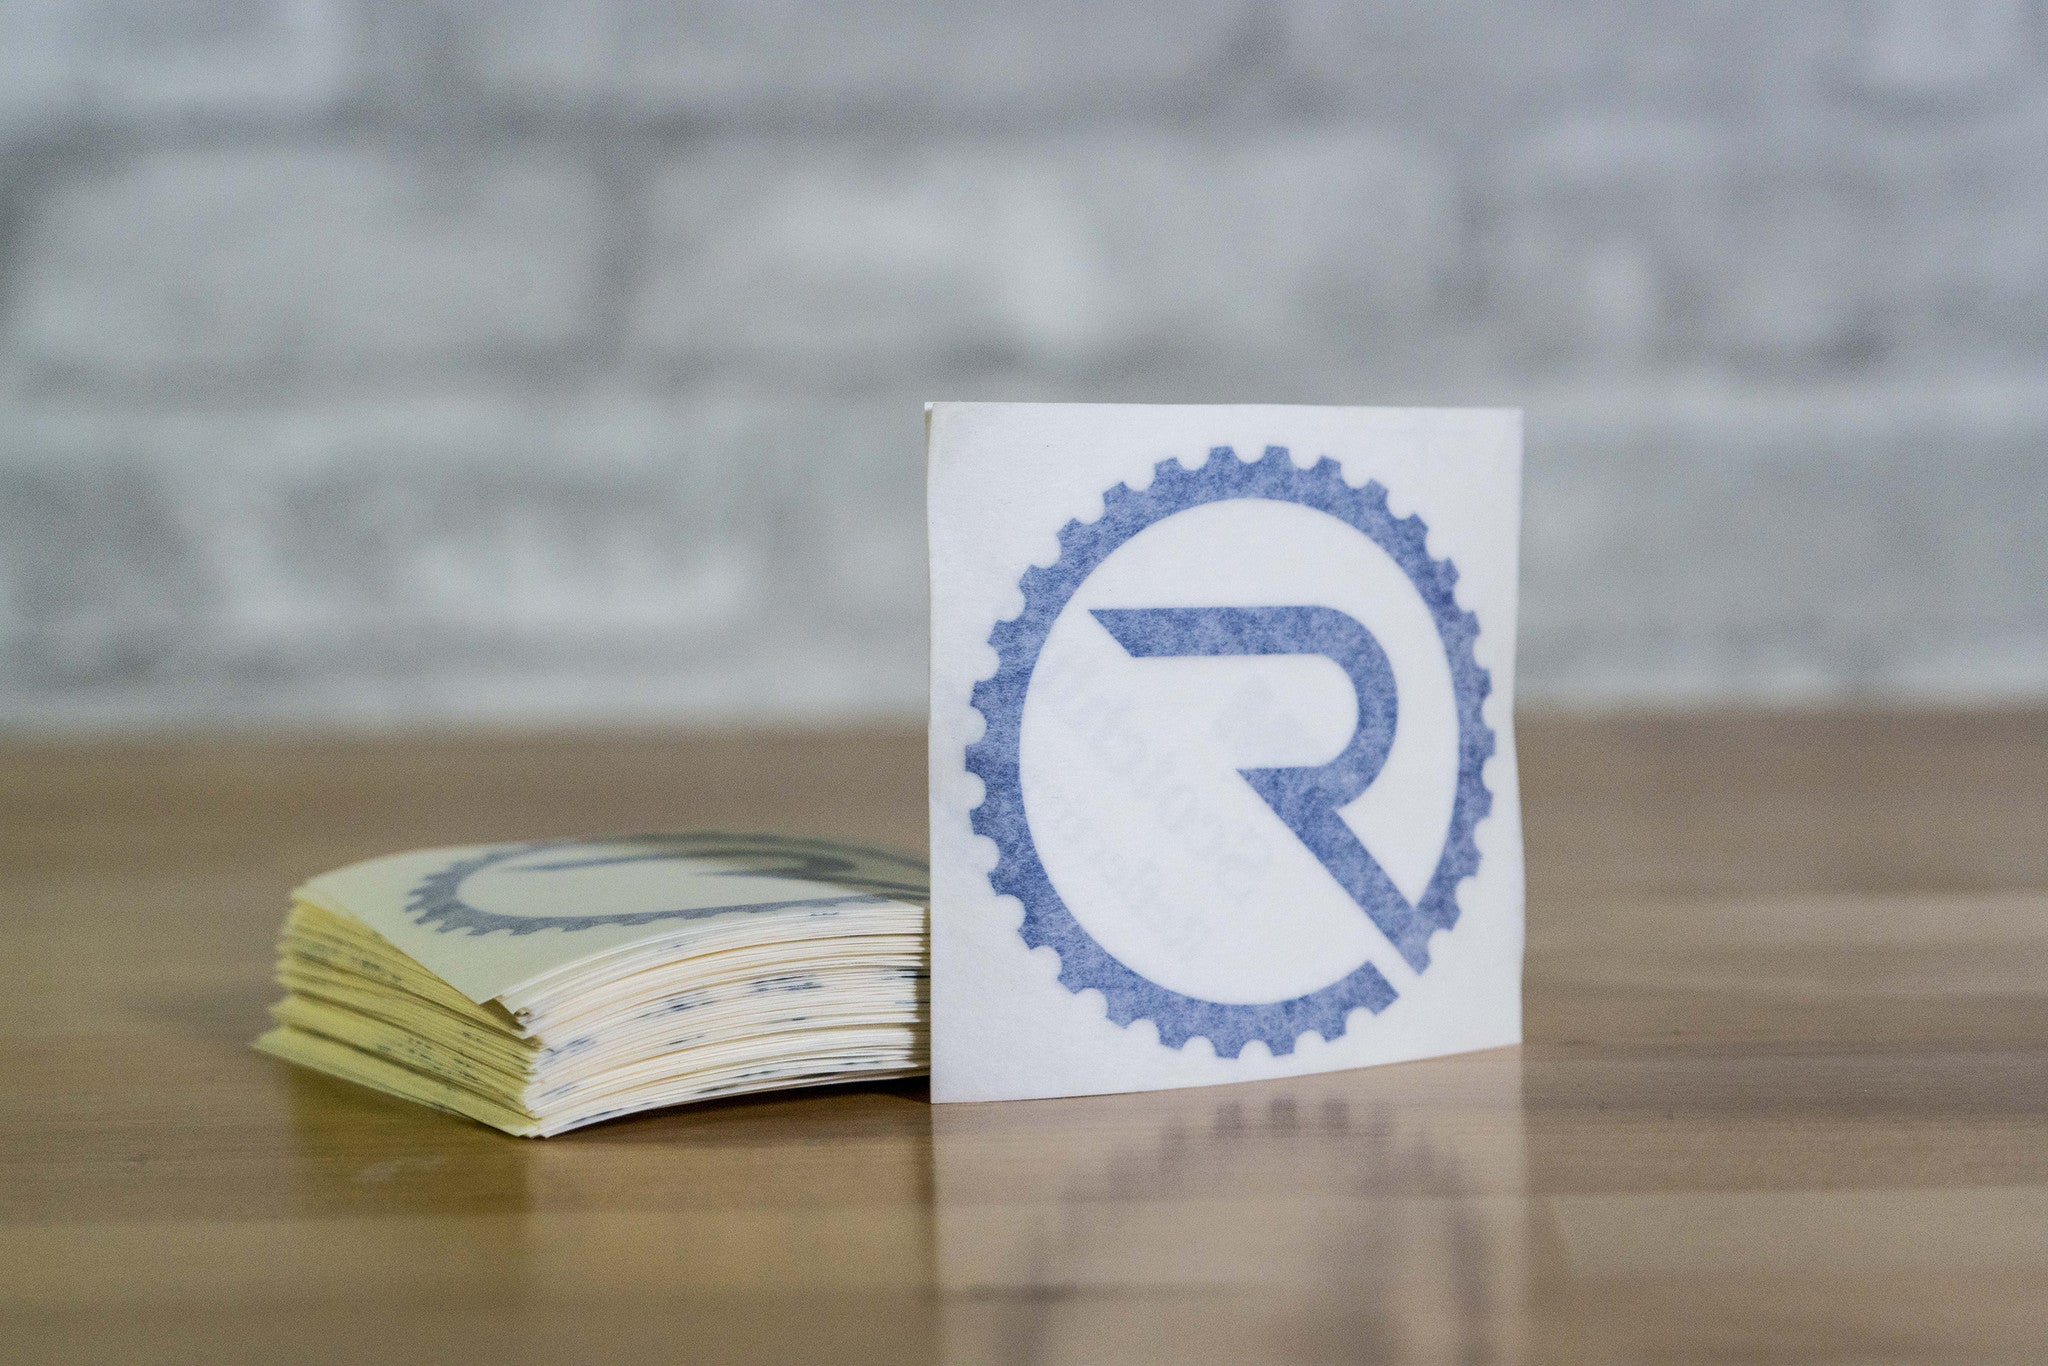 Geared R Decal - Reflective Blue - Ride Apparel Co.